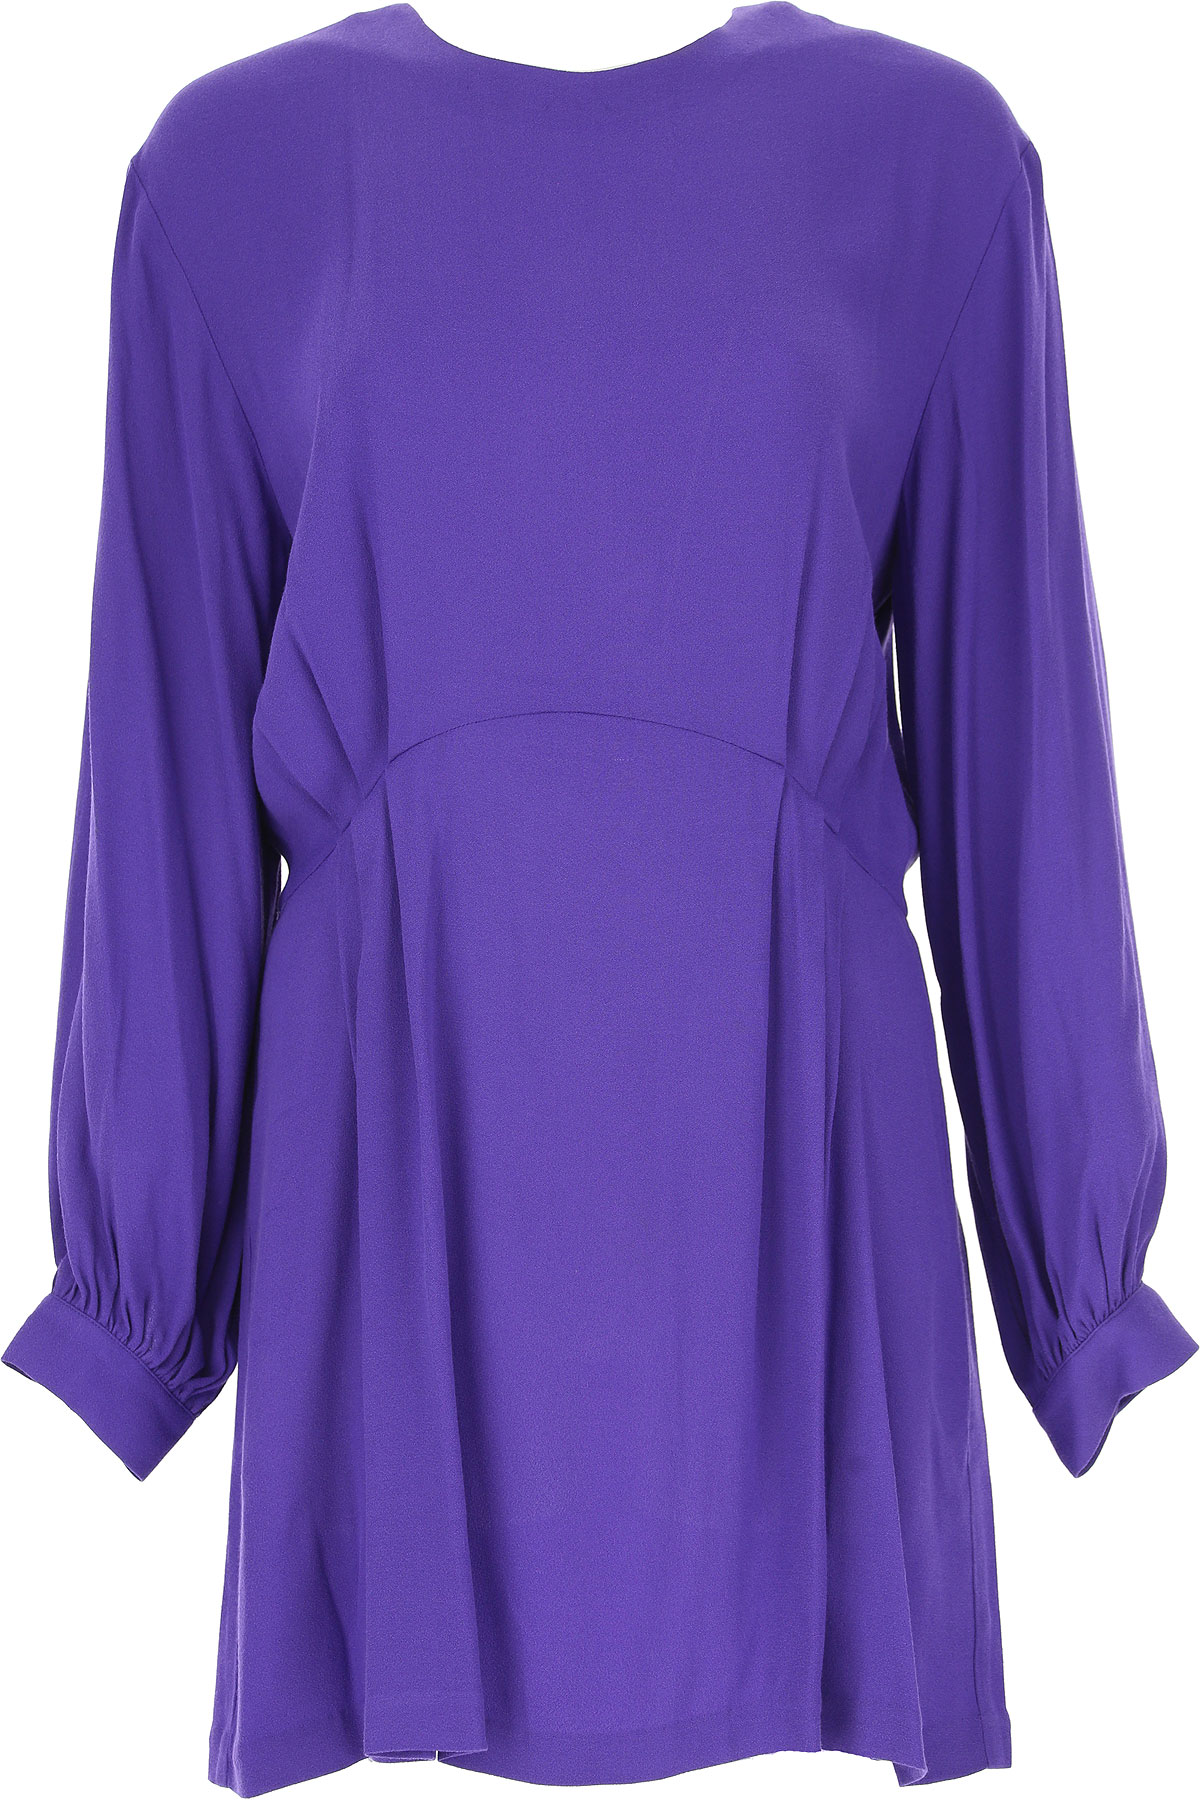 Image of IRO Dress for Women, Evening Cocktail Party, Violet, Viscose, 2017, 2 4 6 8